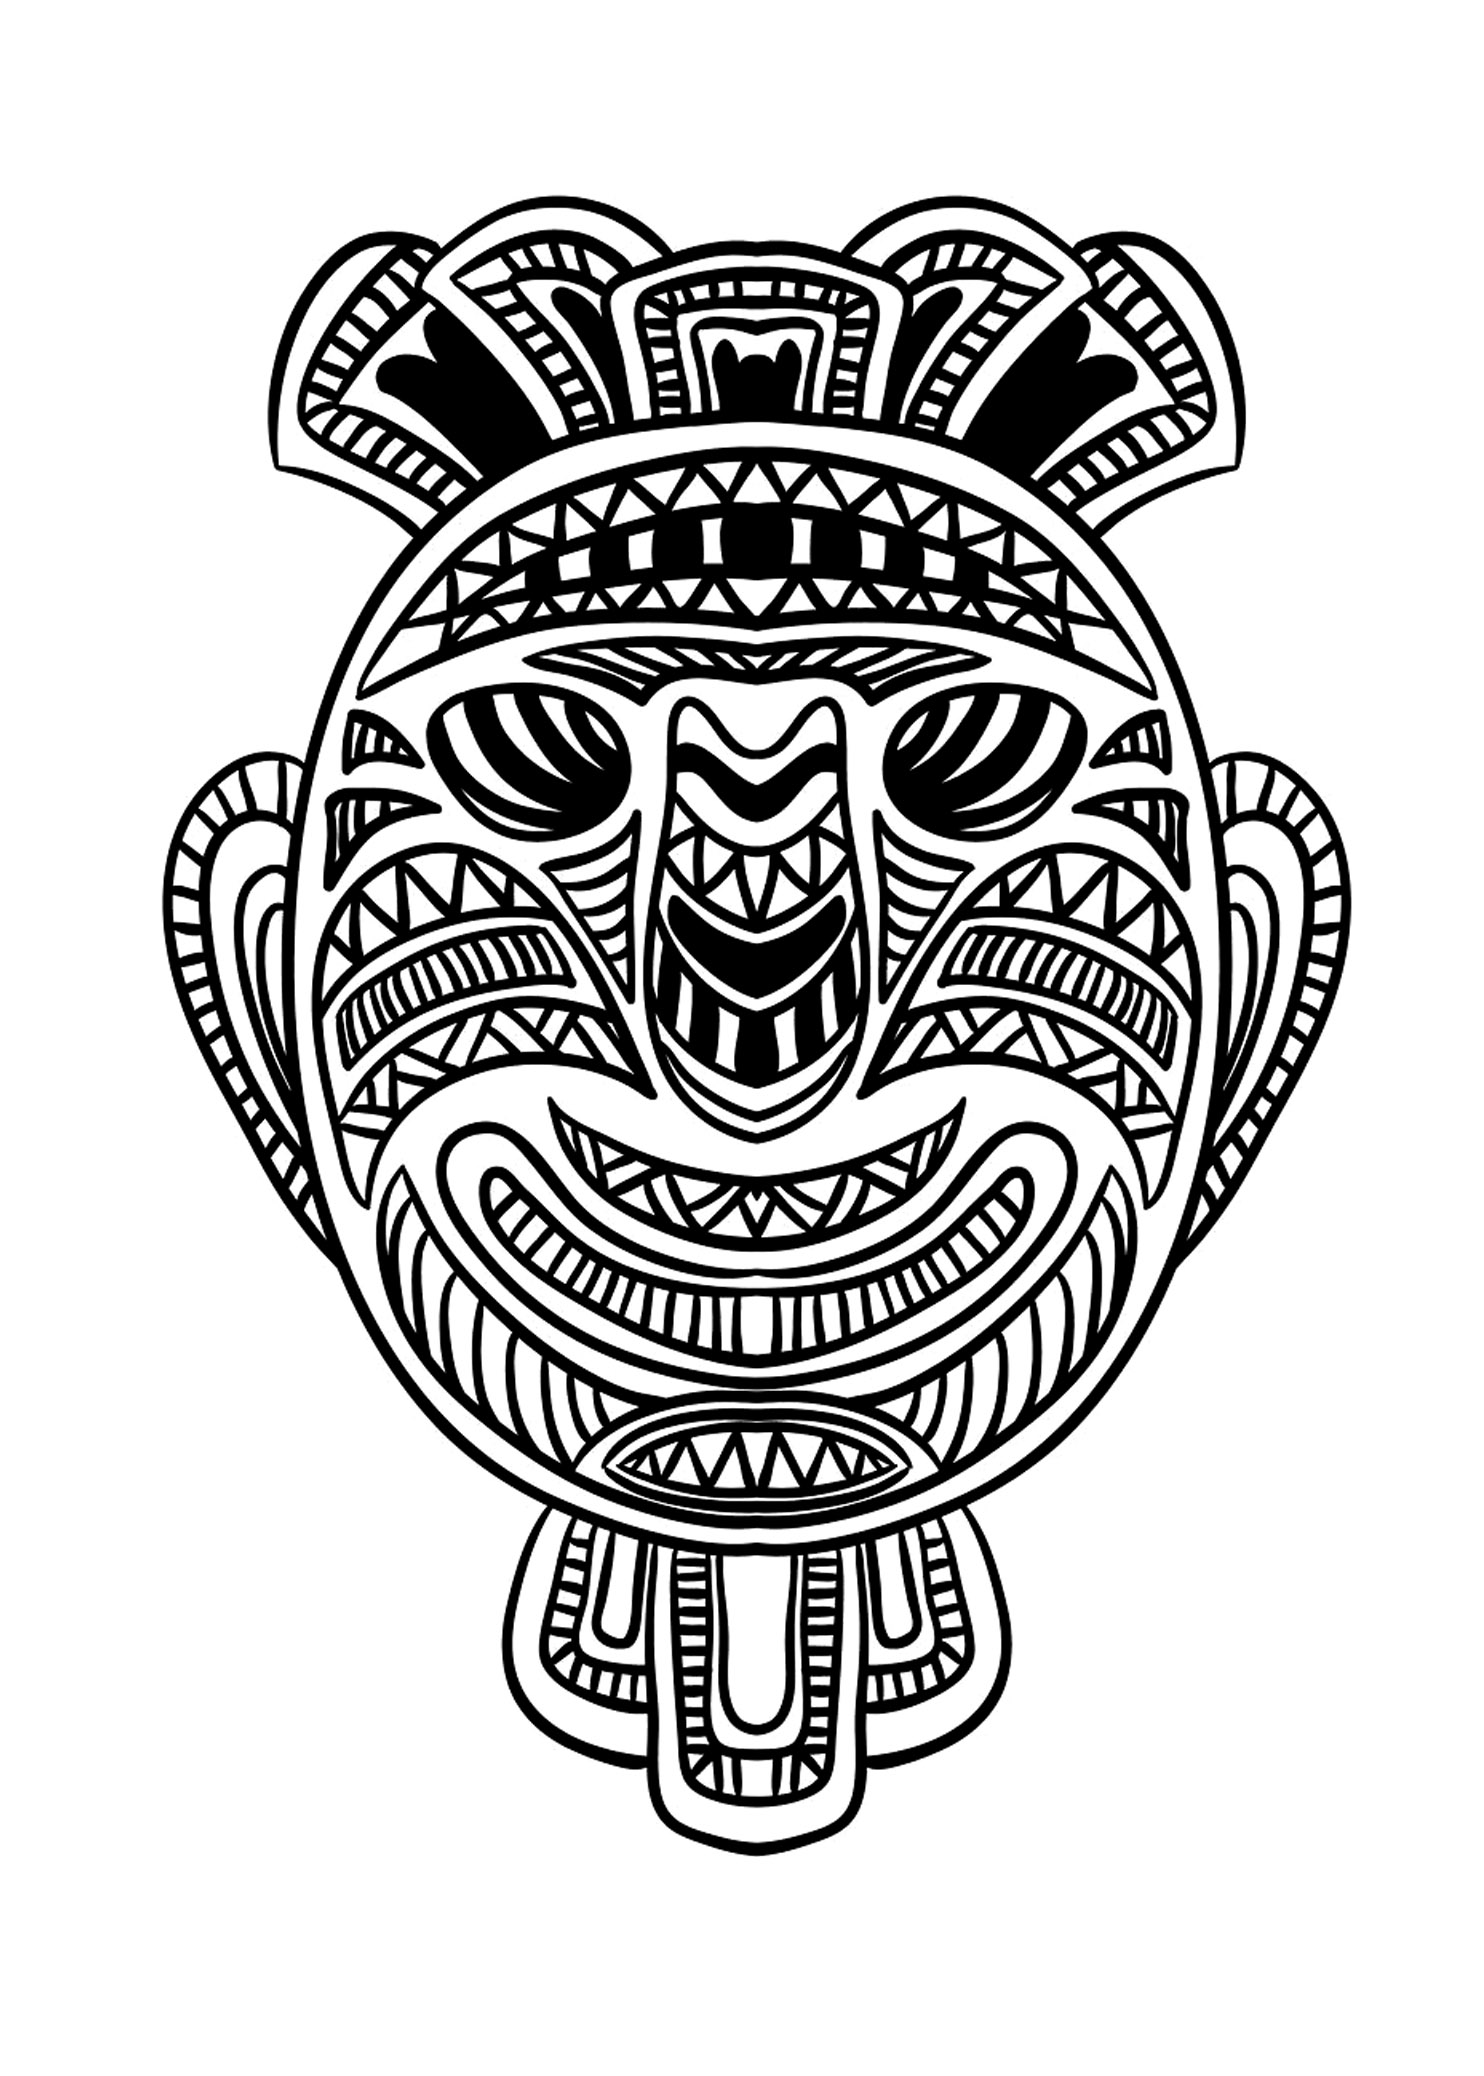 Coloring picture of an African mask - 1